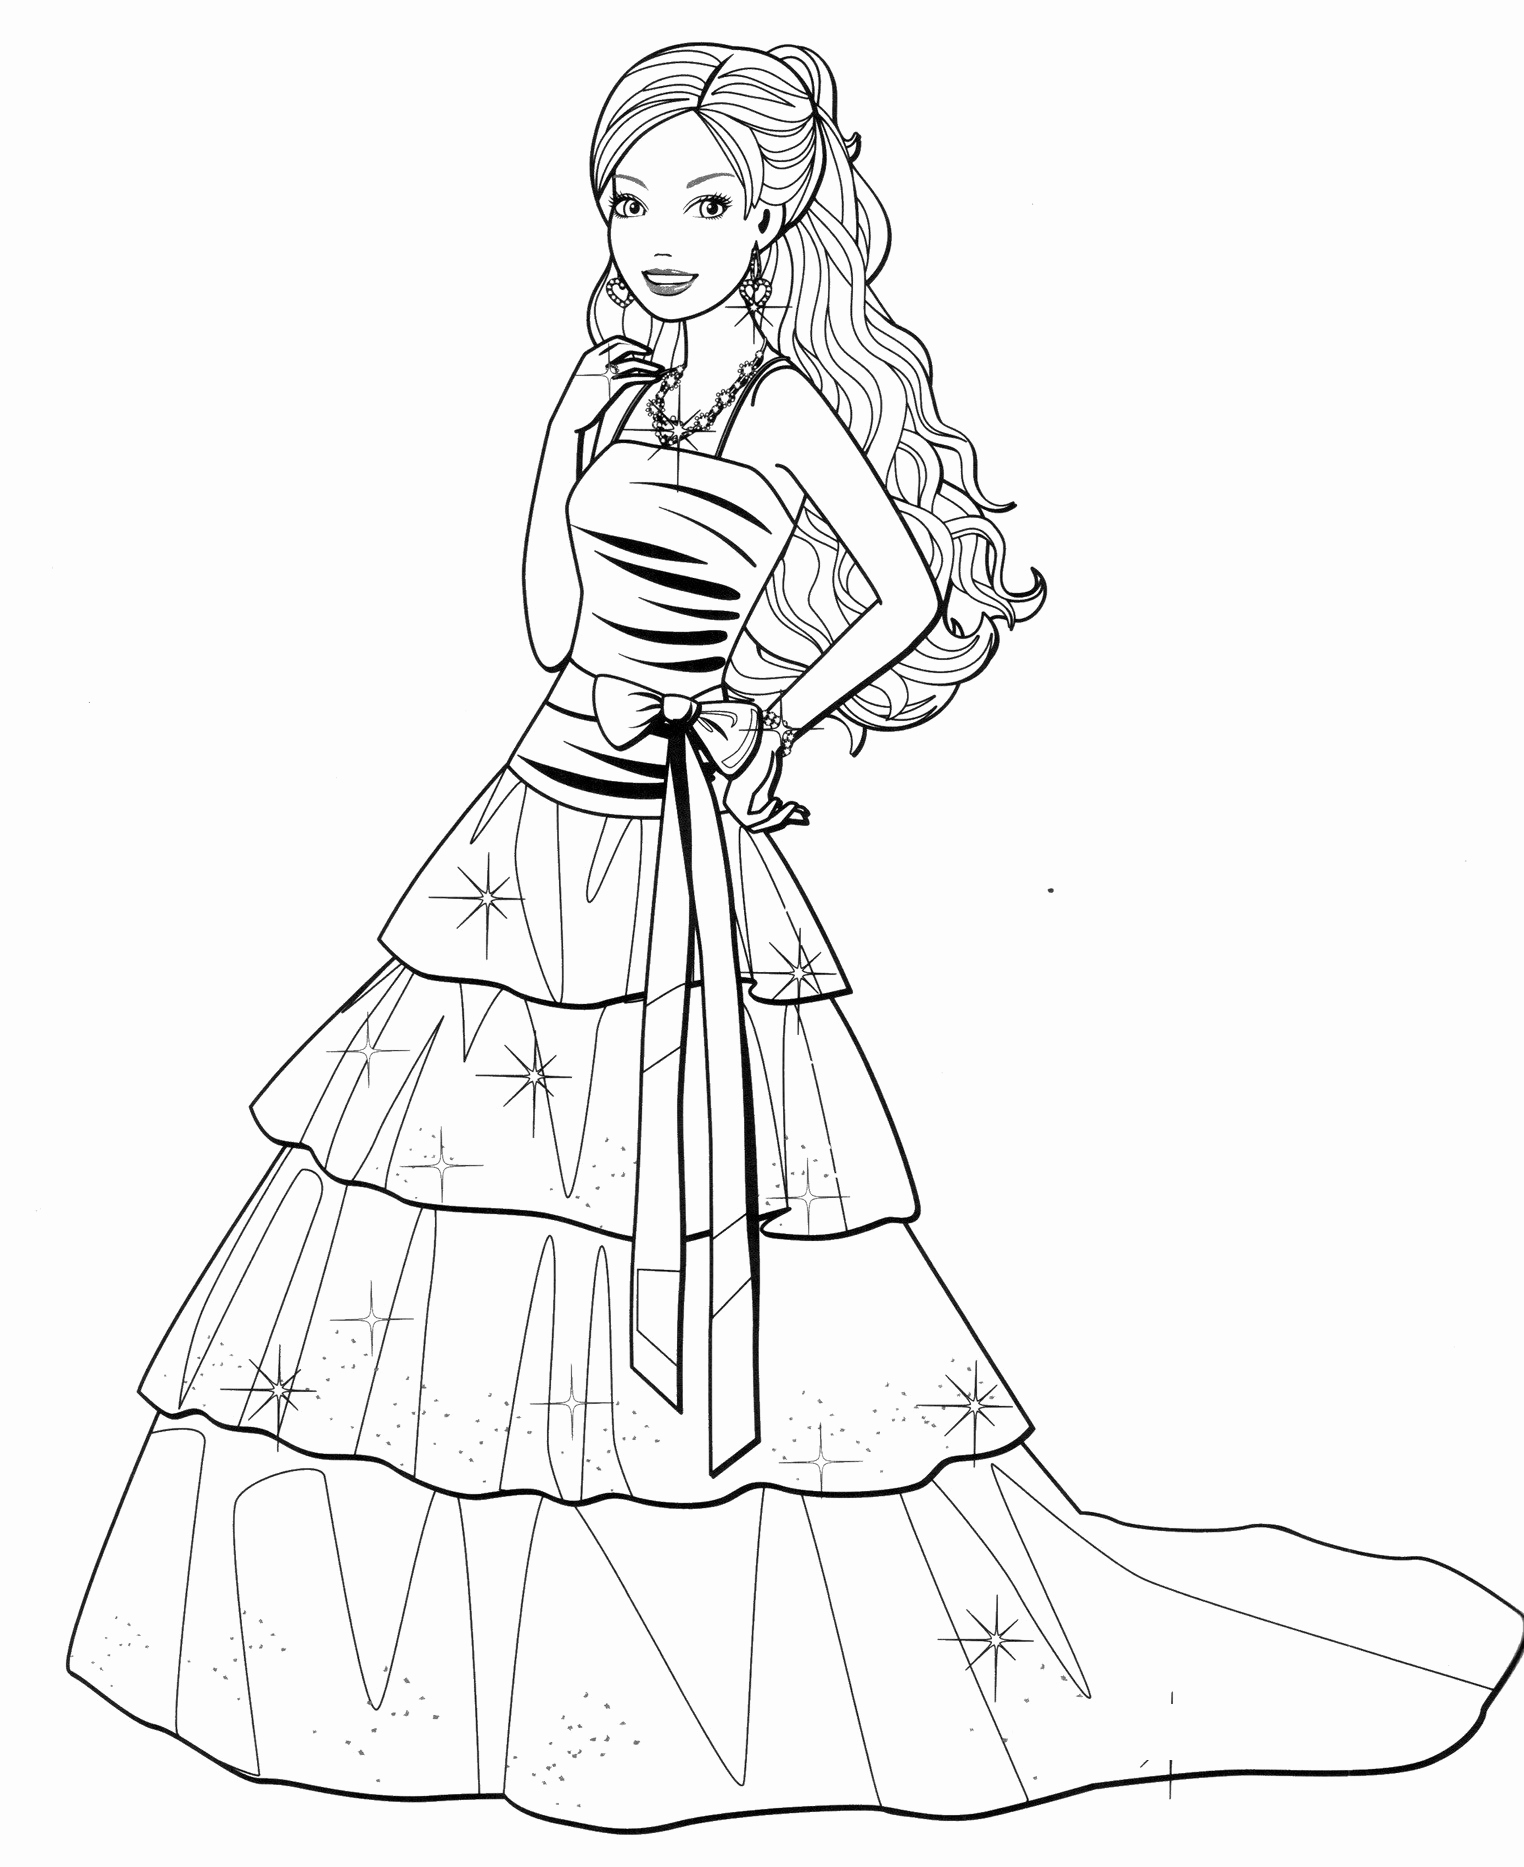 coloring pages for girls dresses dress coloring pages free printable dress coloring pages pages dresses coloring for girls